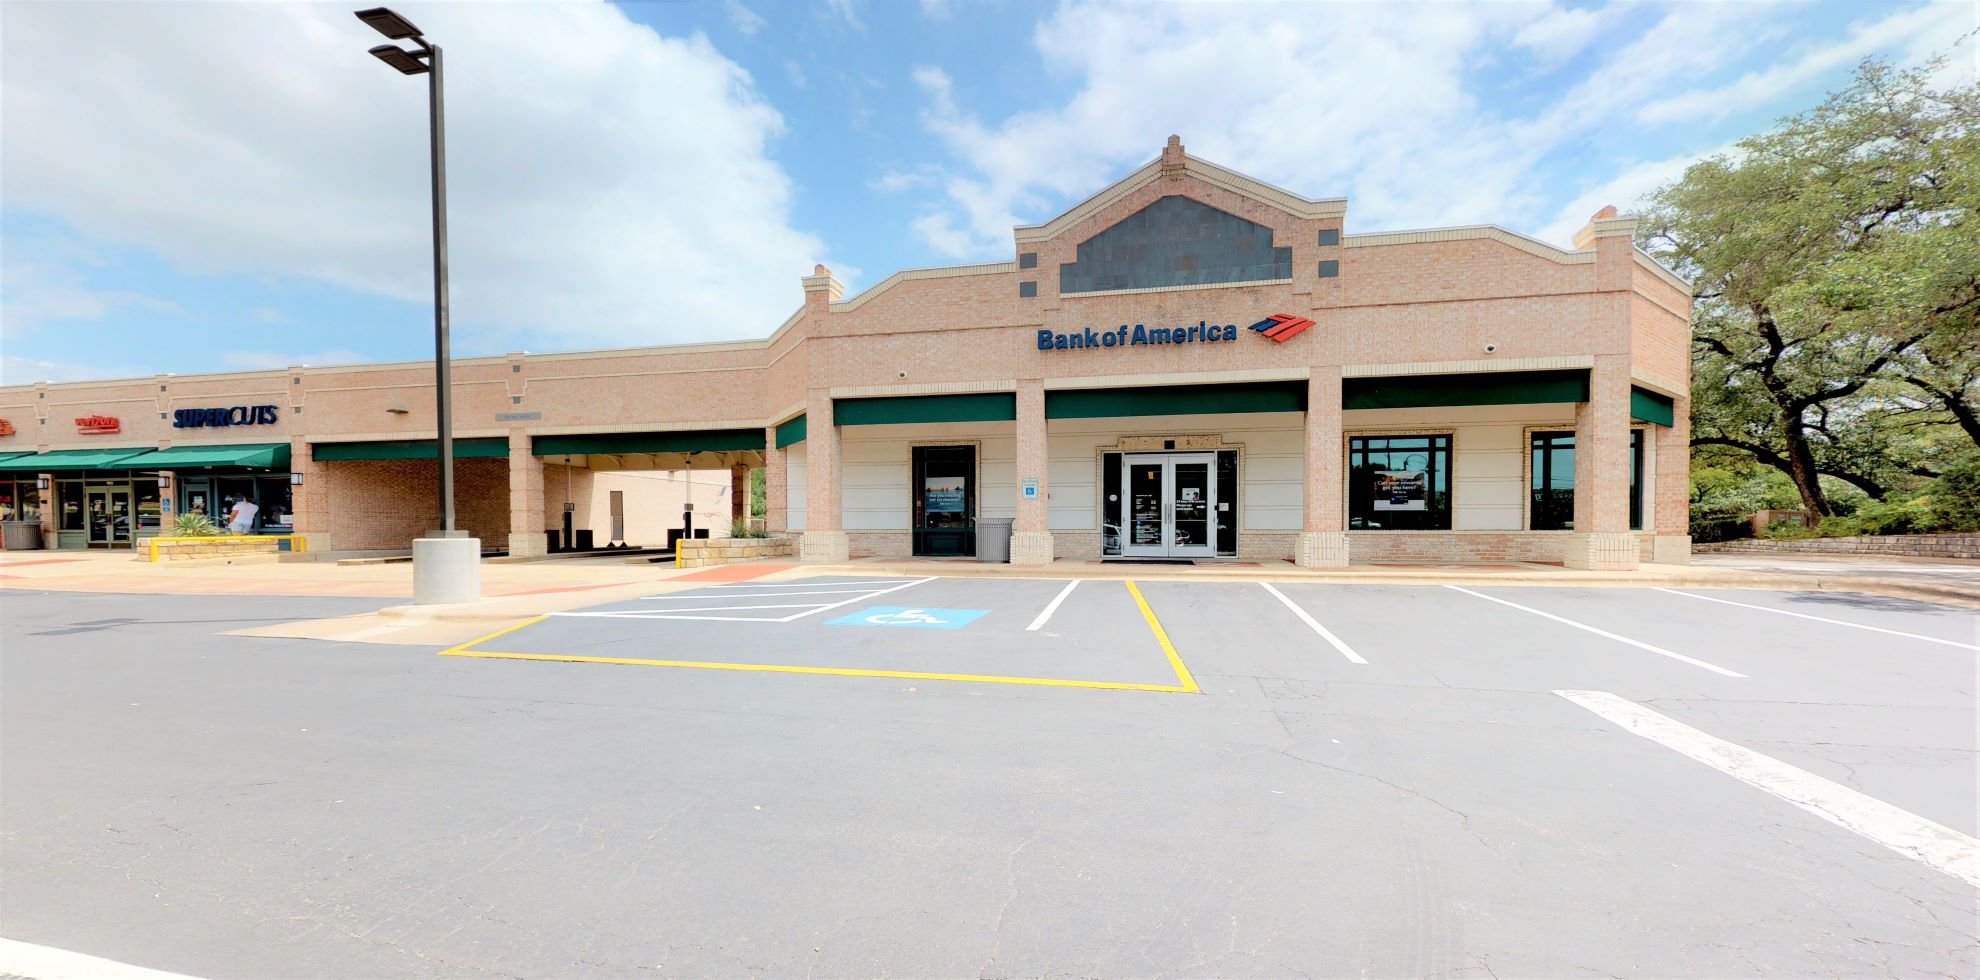 Bank of America financial center with walk-up ATM   3300 Bee Caves Rd STE 795, Austin, TX 78746